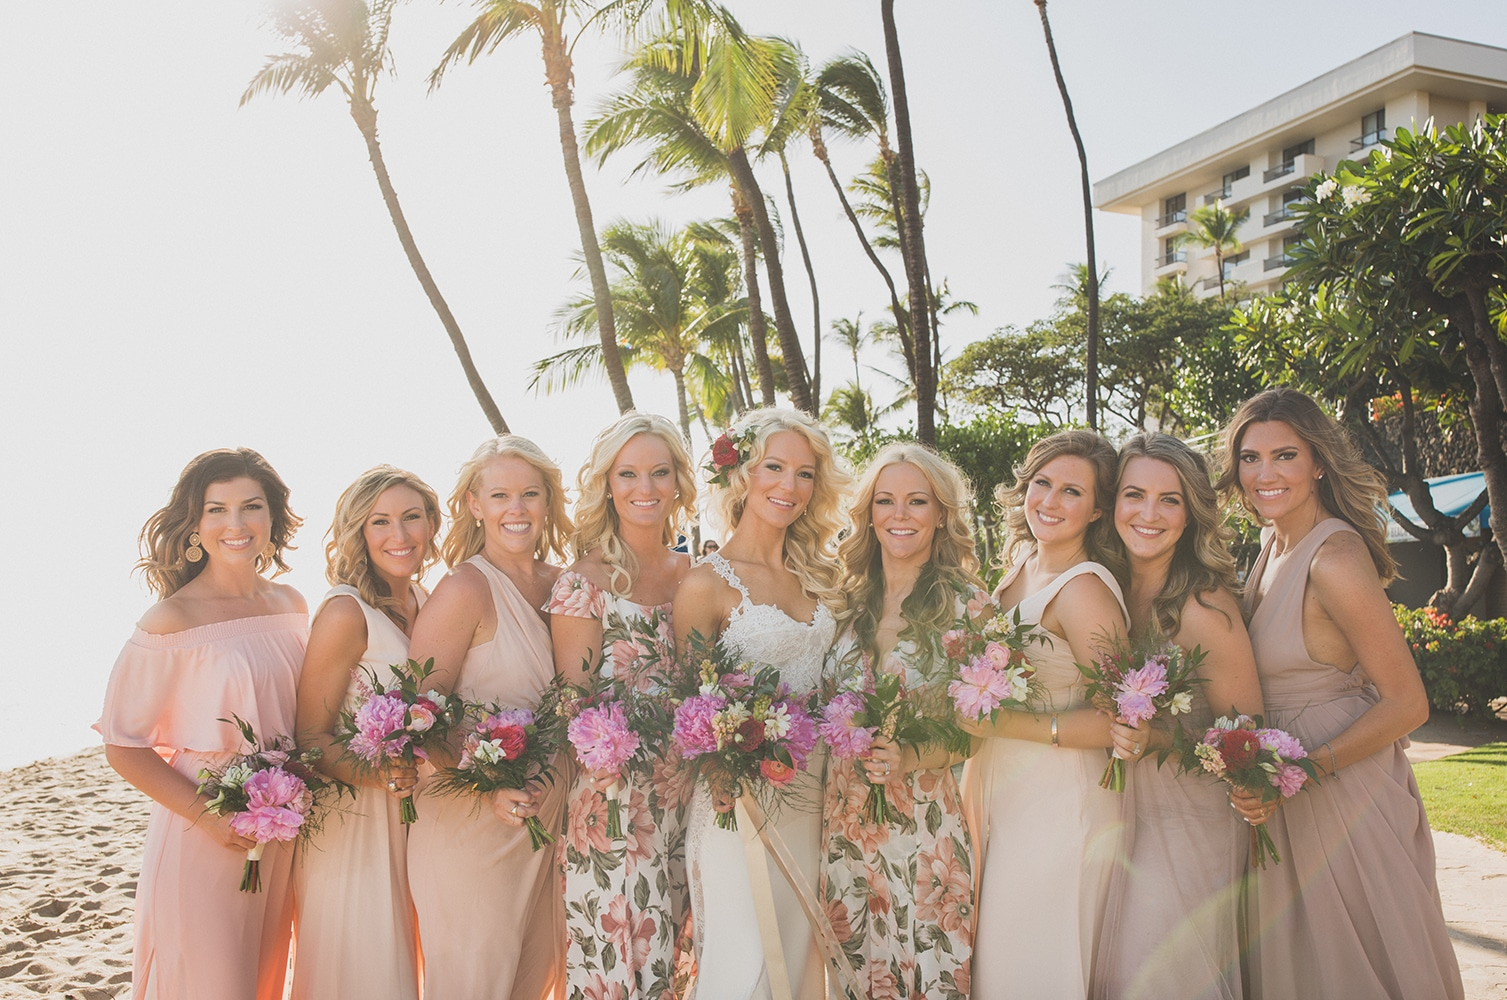 Spray Tanning Your Bridal Party